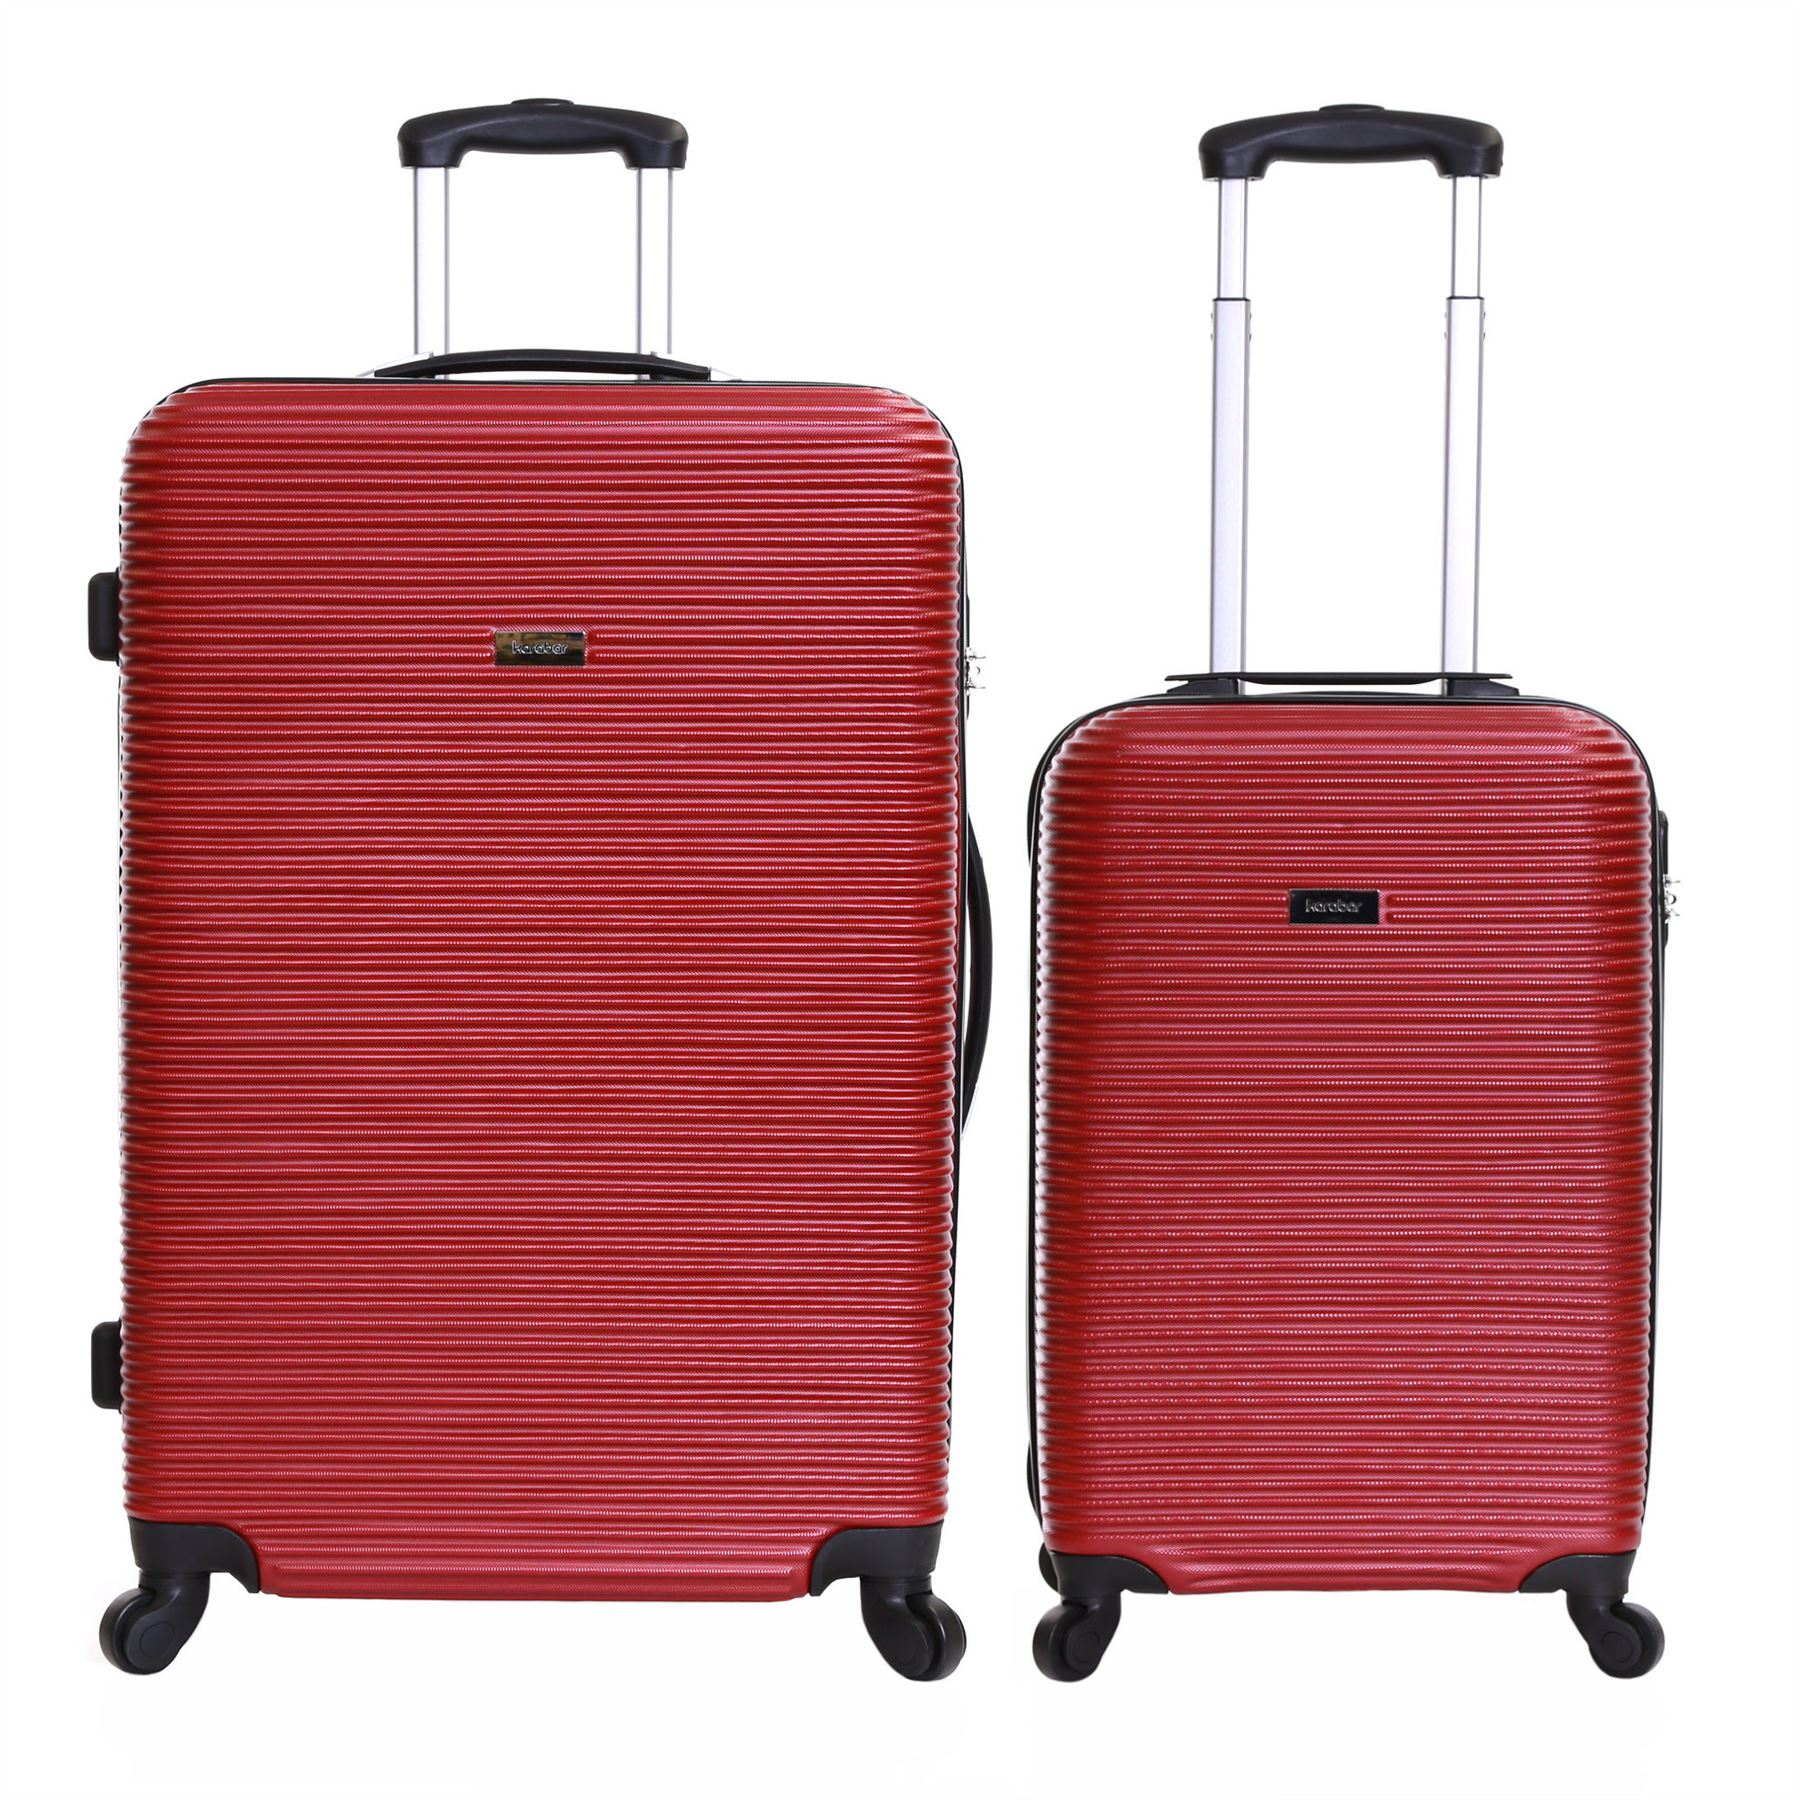 Karabar Set of 2 Hard Plastic 4 Wheeled Luggage Trolleys Suitcases ...